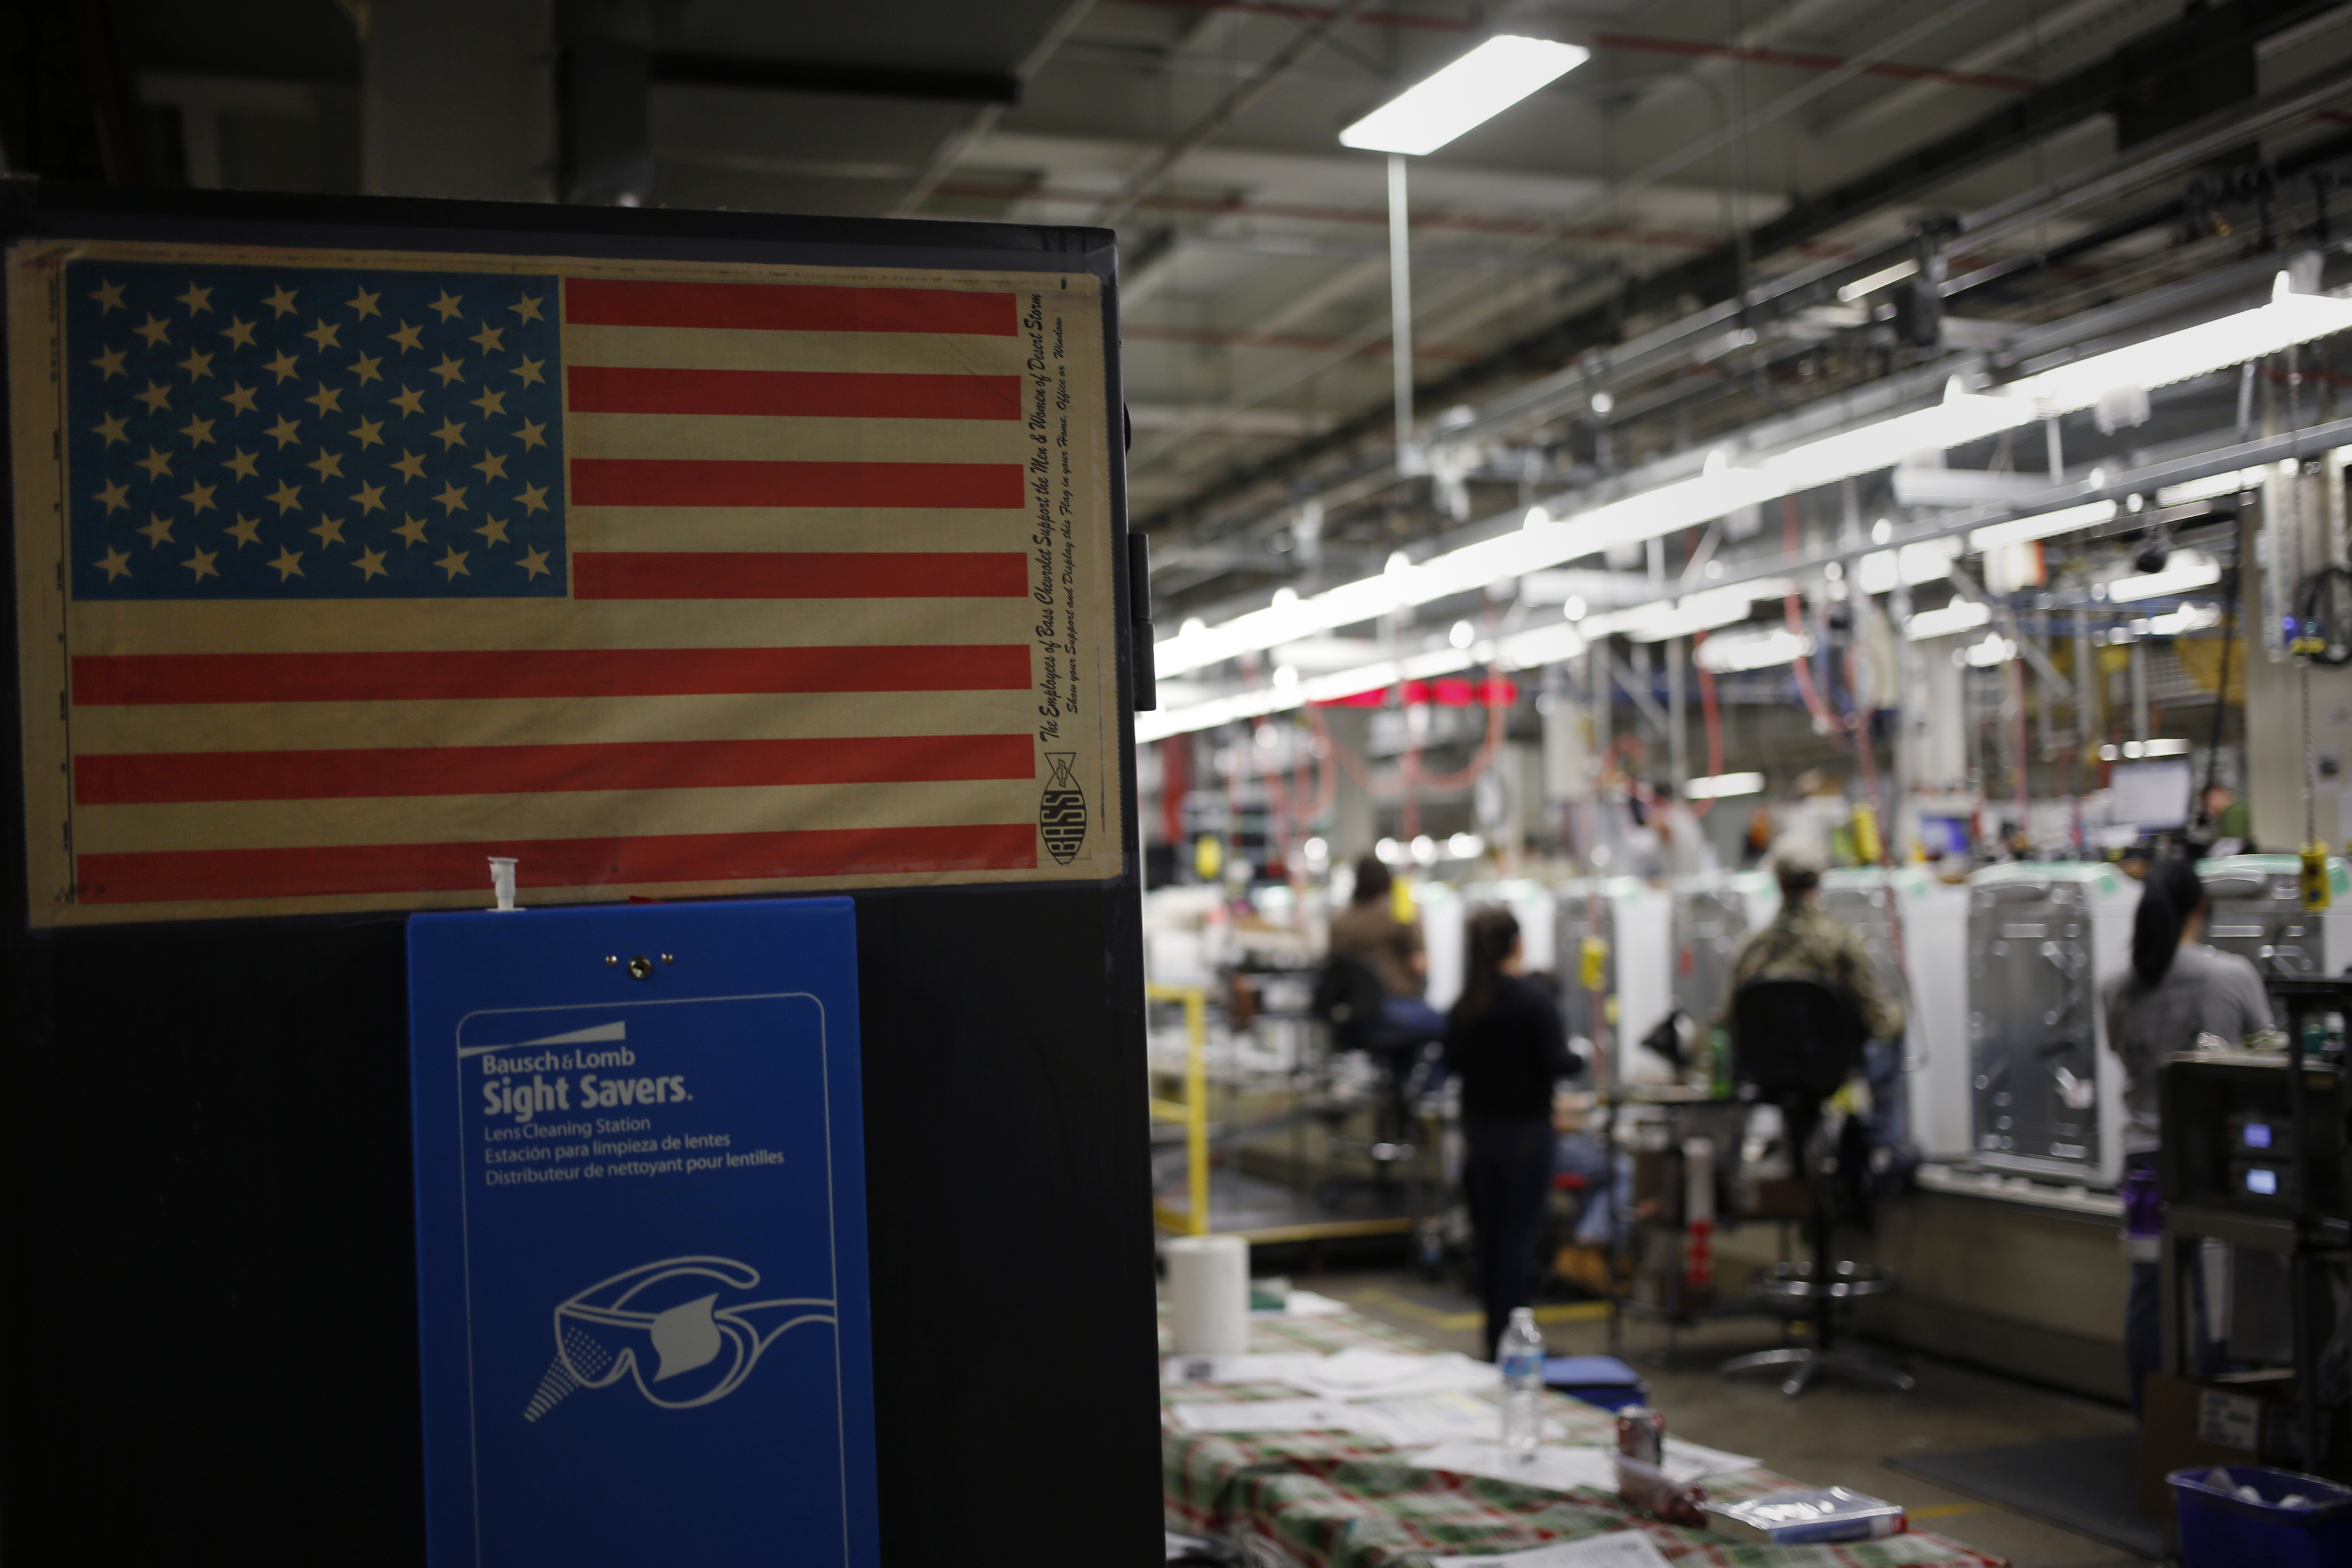 Inside The Whirlpool Corp. Brand Washing Machine Manufacturing Facility Ahead Of Business Inventories Figures